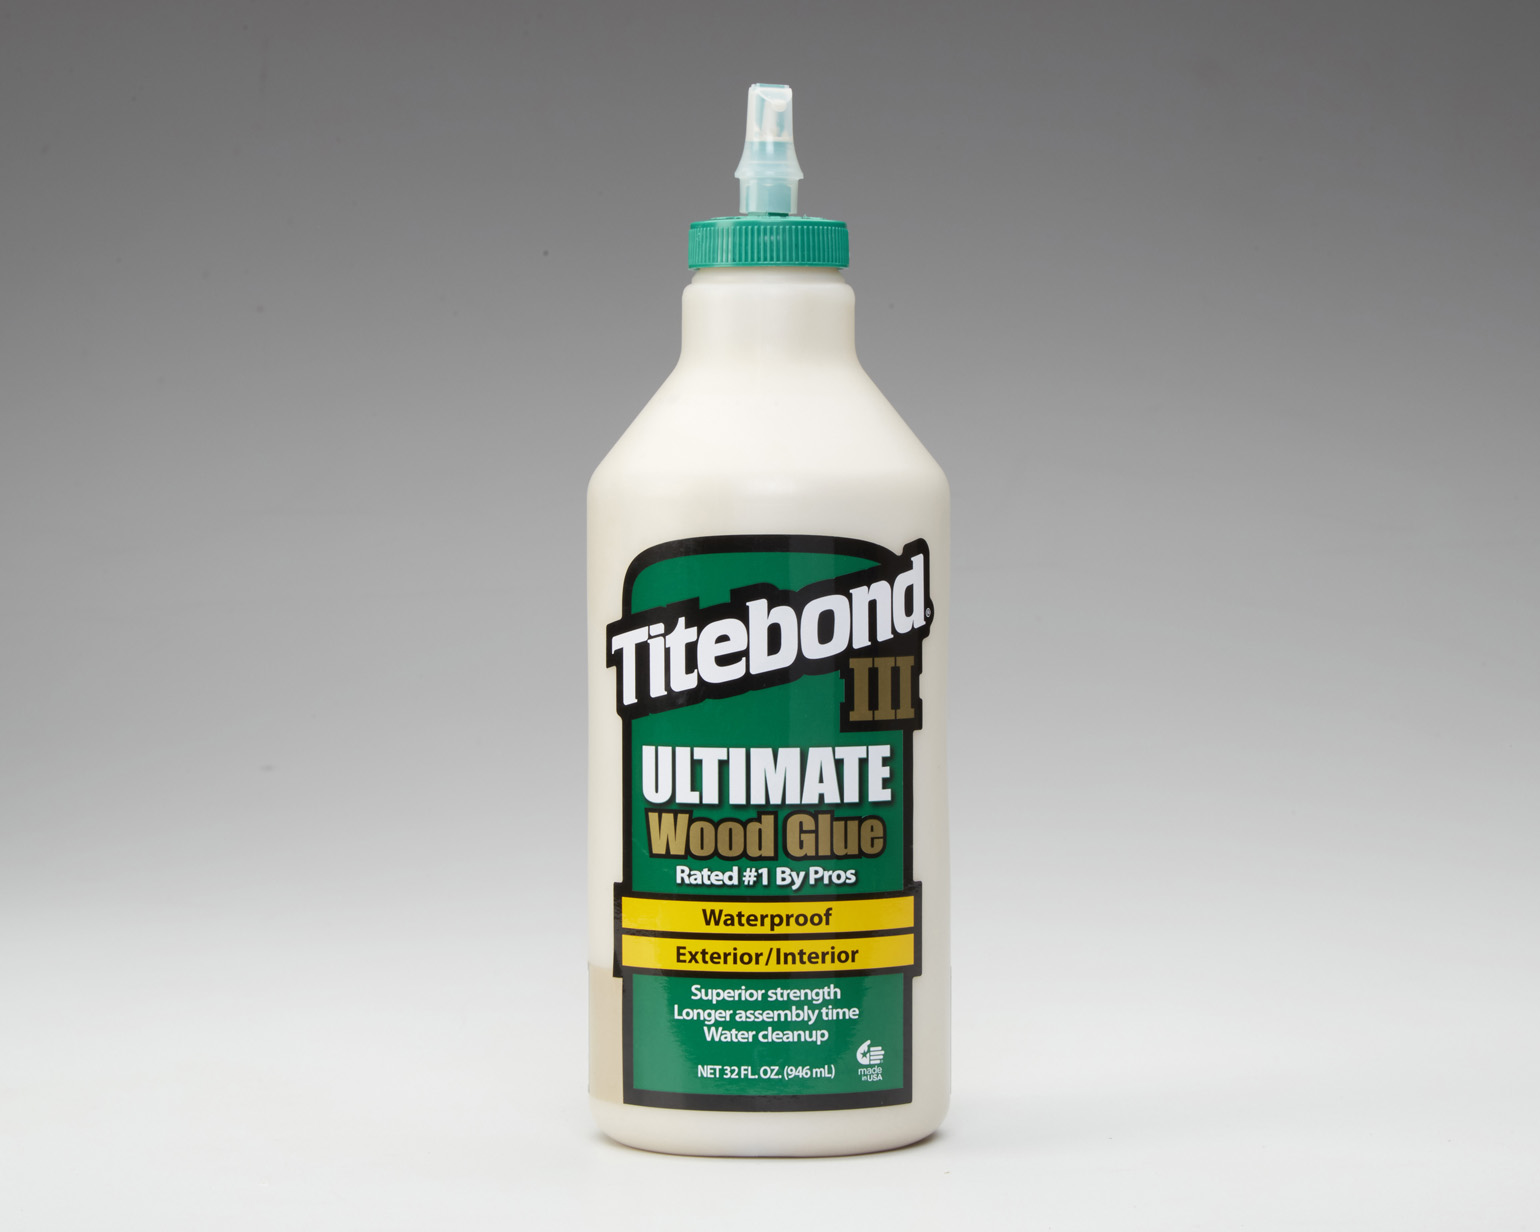 glu32-titebond-iii-glue-32oz-1540.jpg